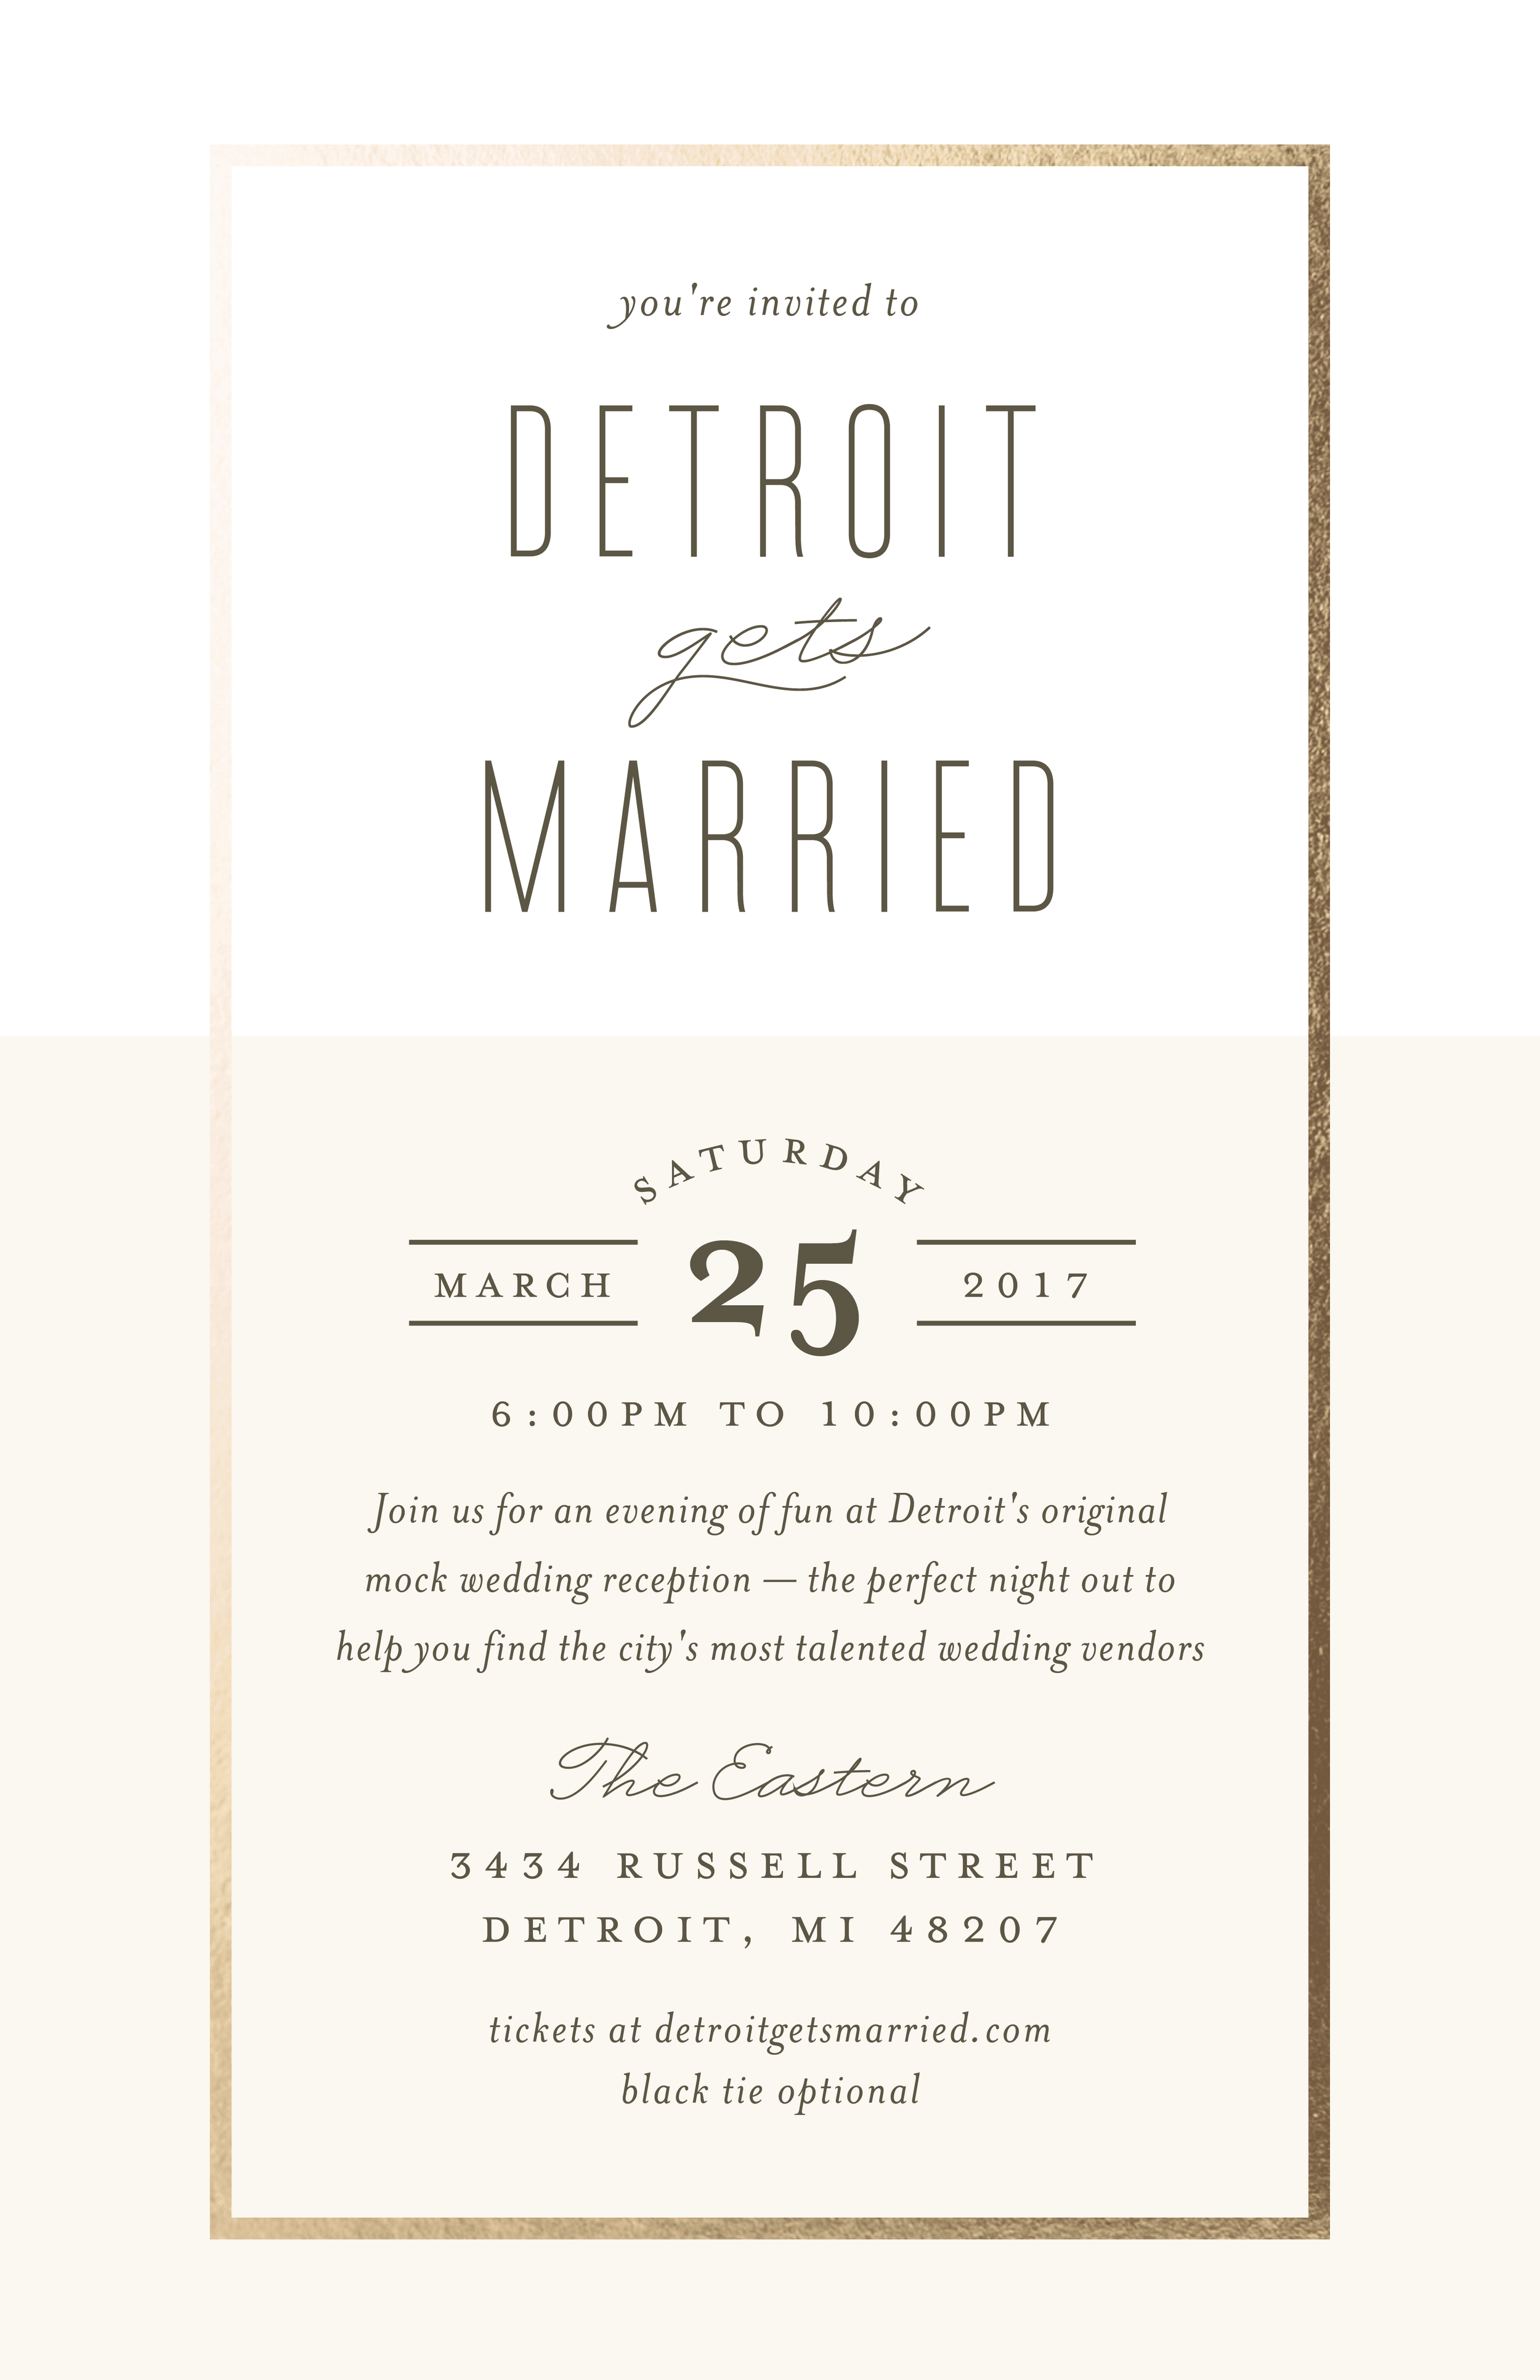 Detroit Gets Married Spring 2017- The Eastern